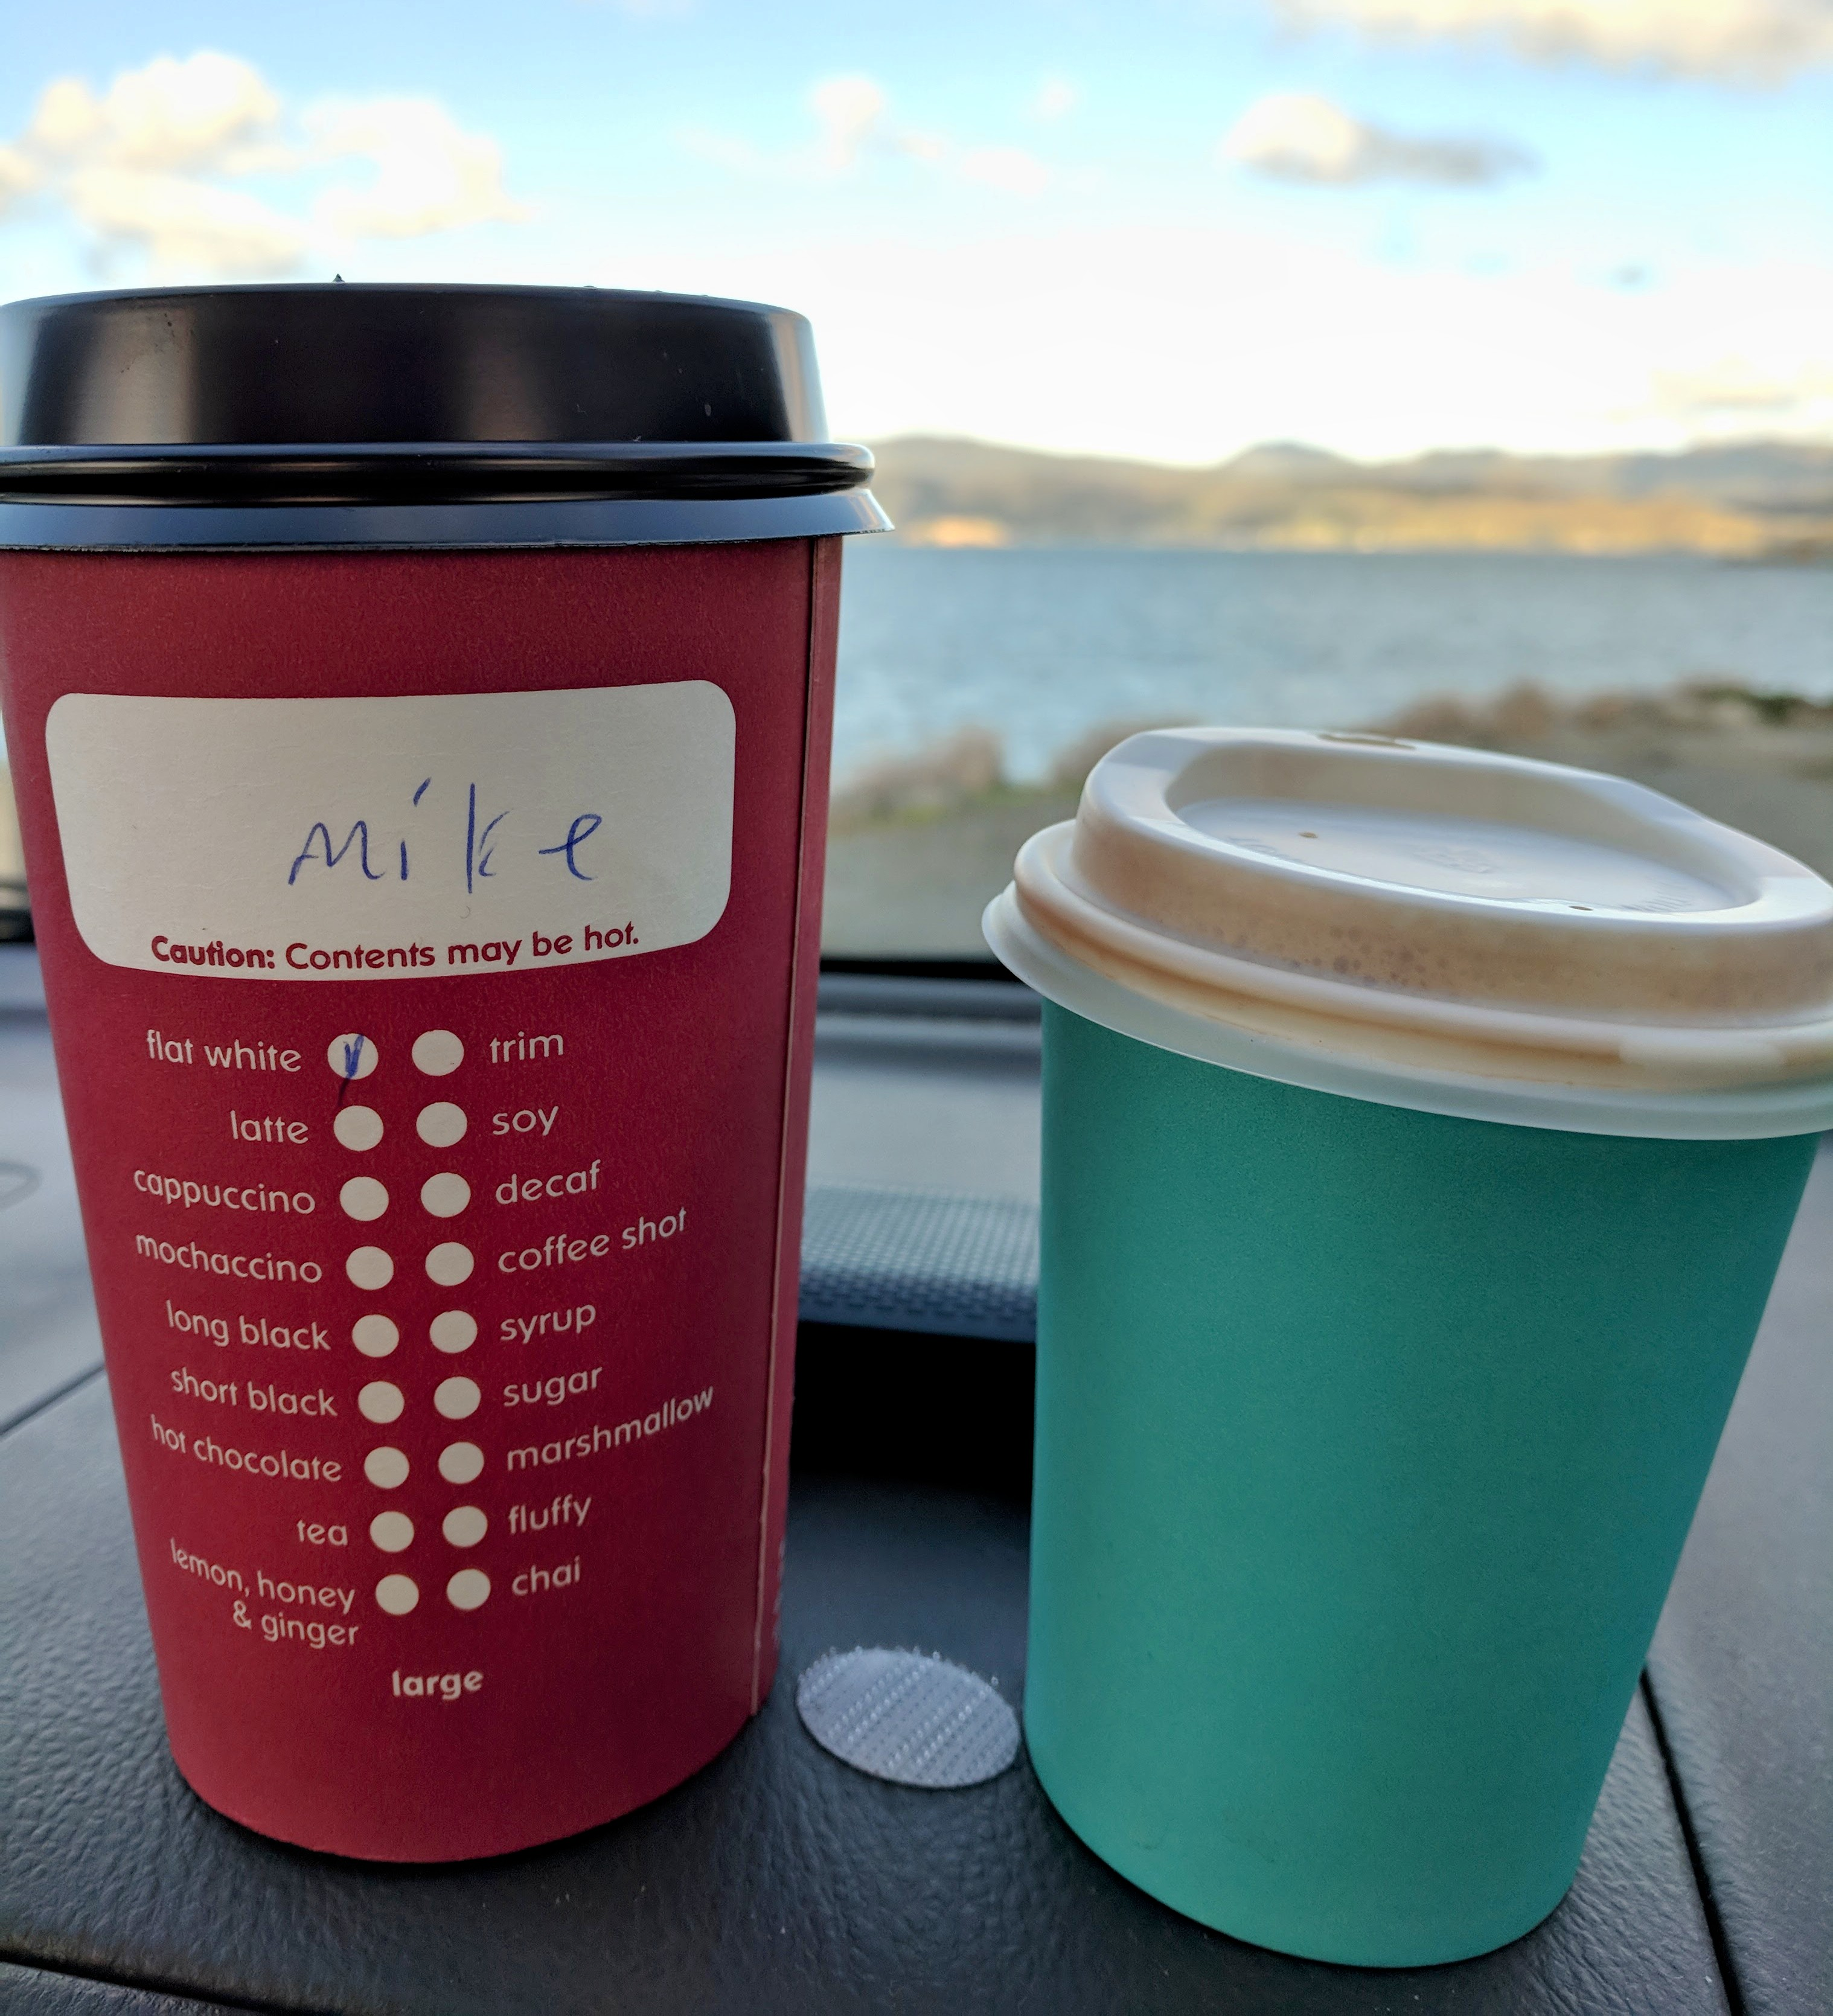 Two takeaway coffees, both 'large', apparently.